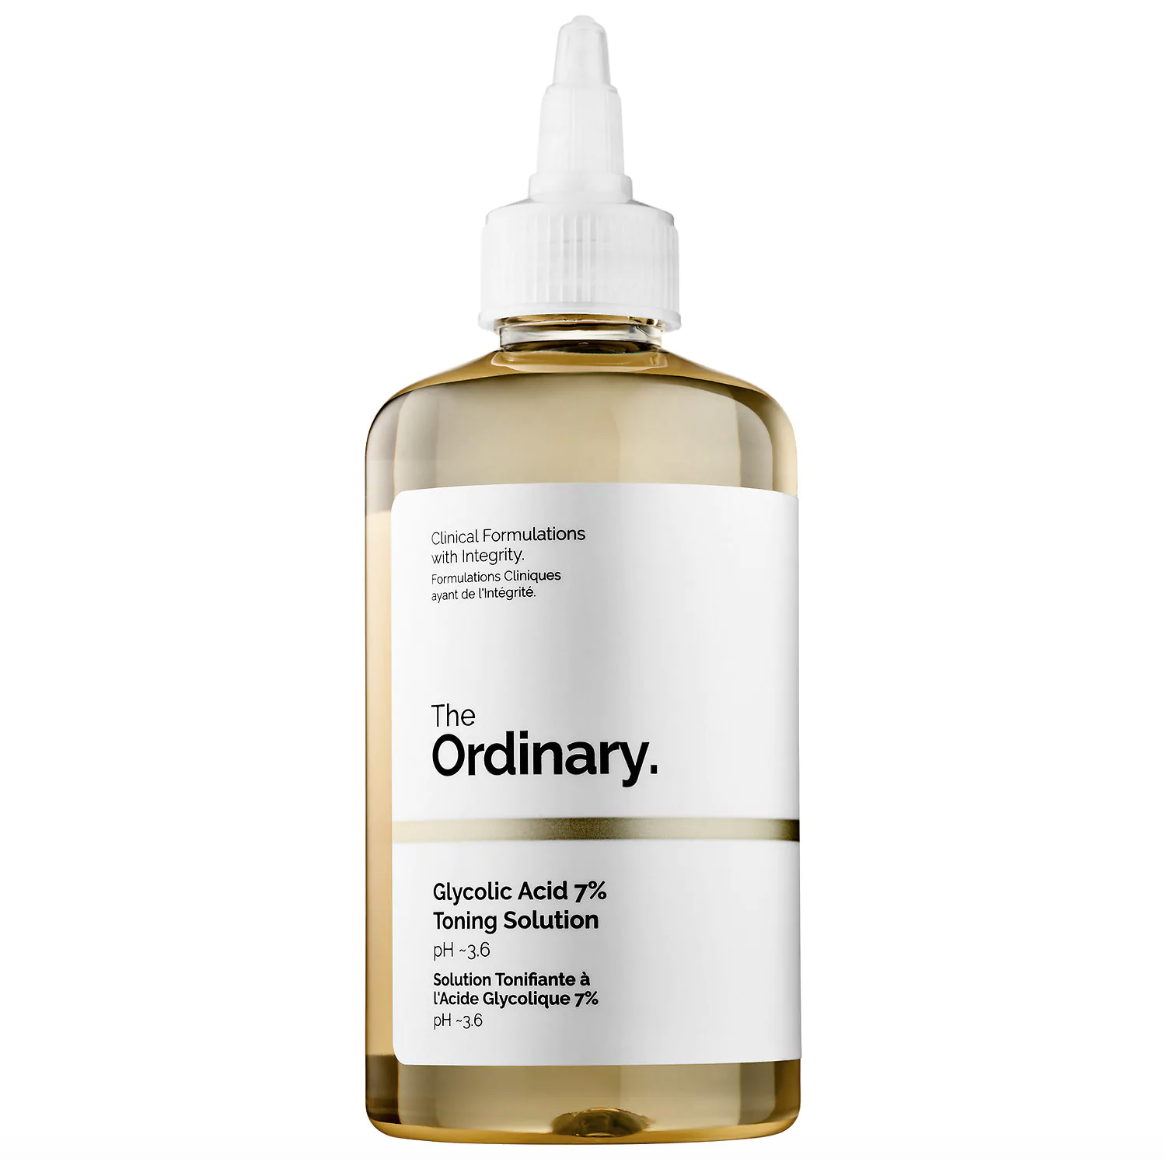 THE ORDINARY 240ml Glycolic Acid 7% Toning Solution facial t